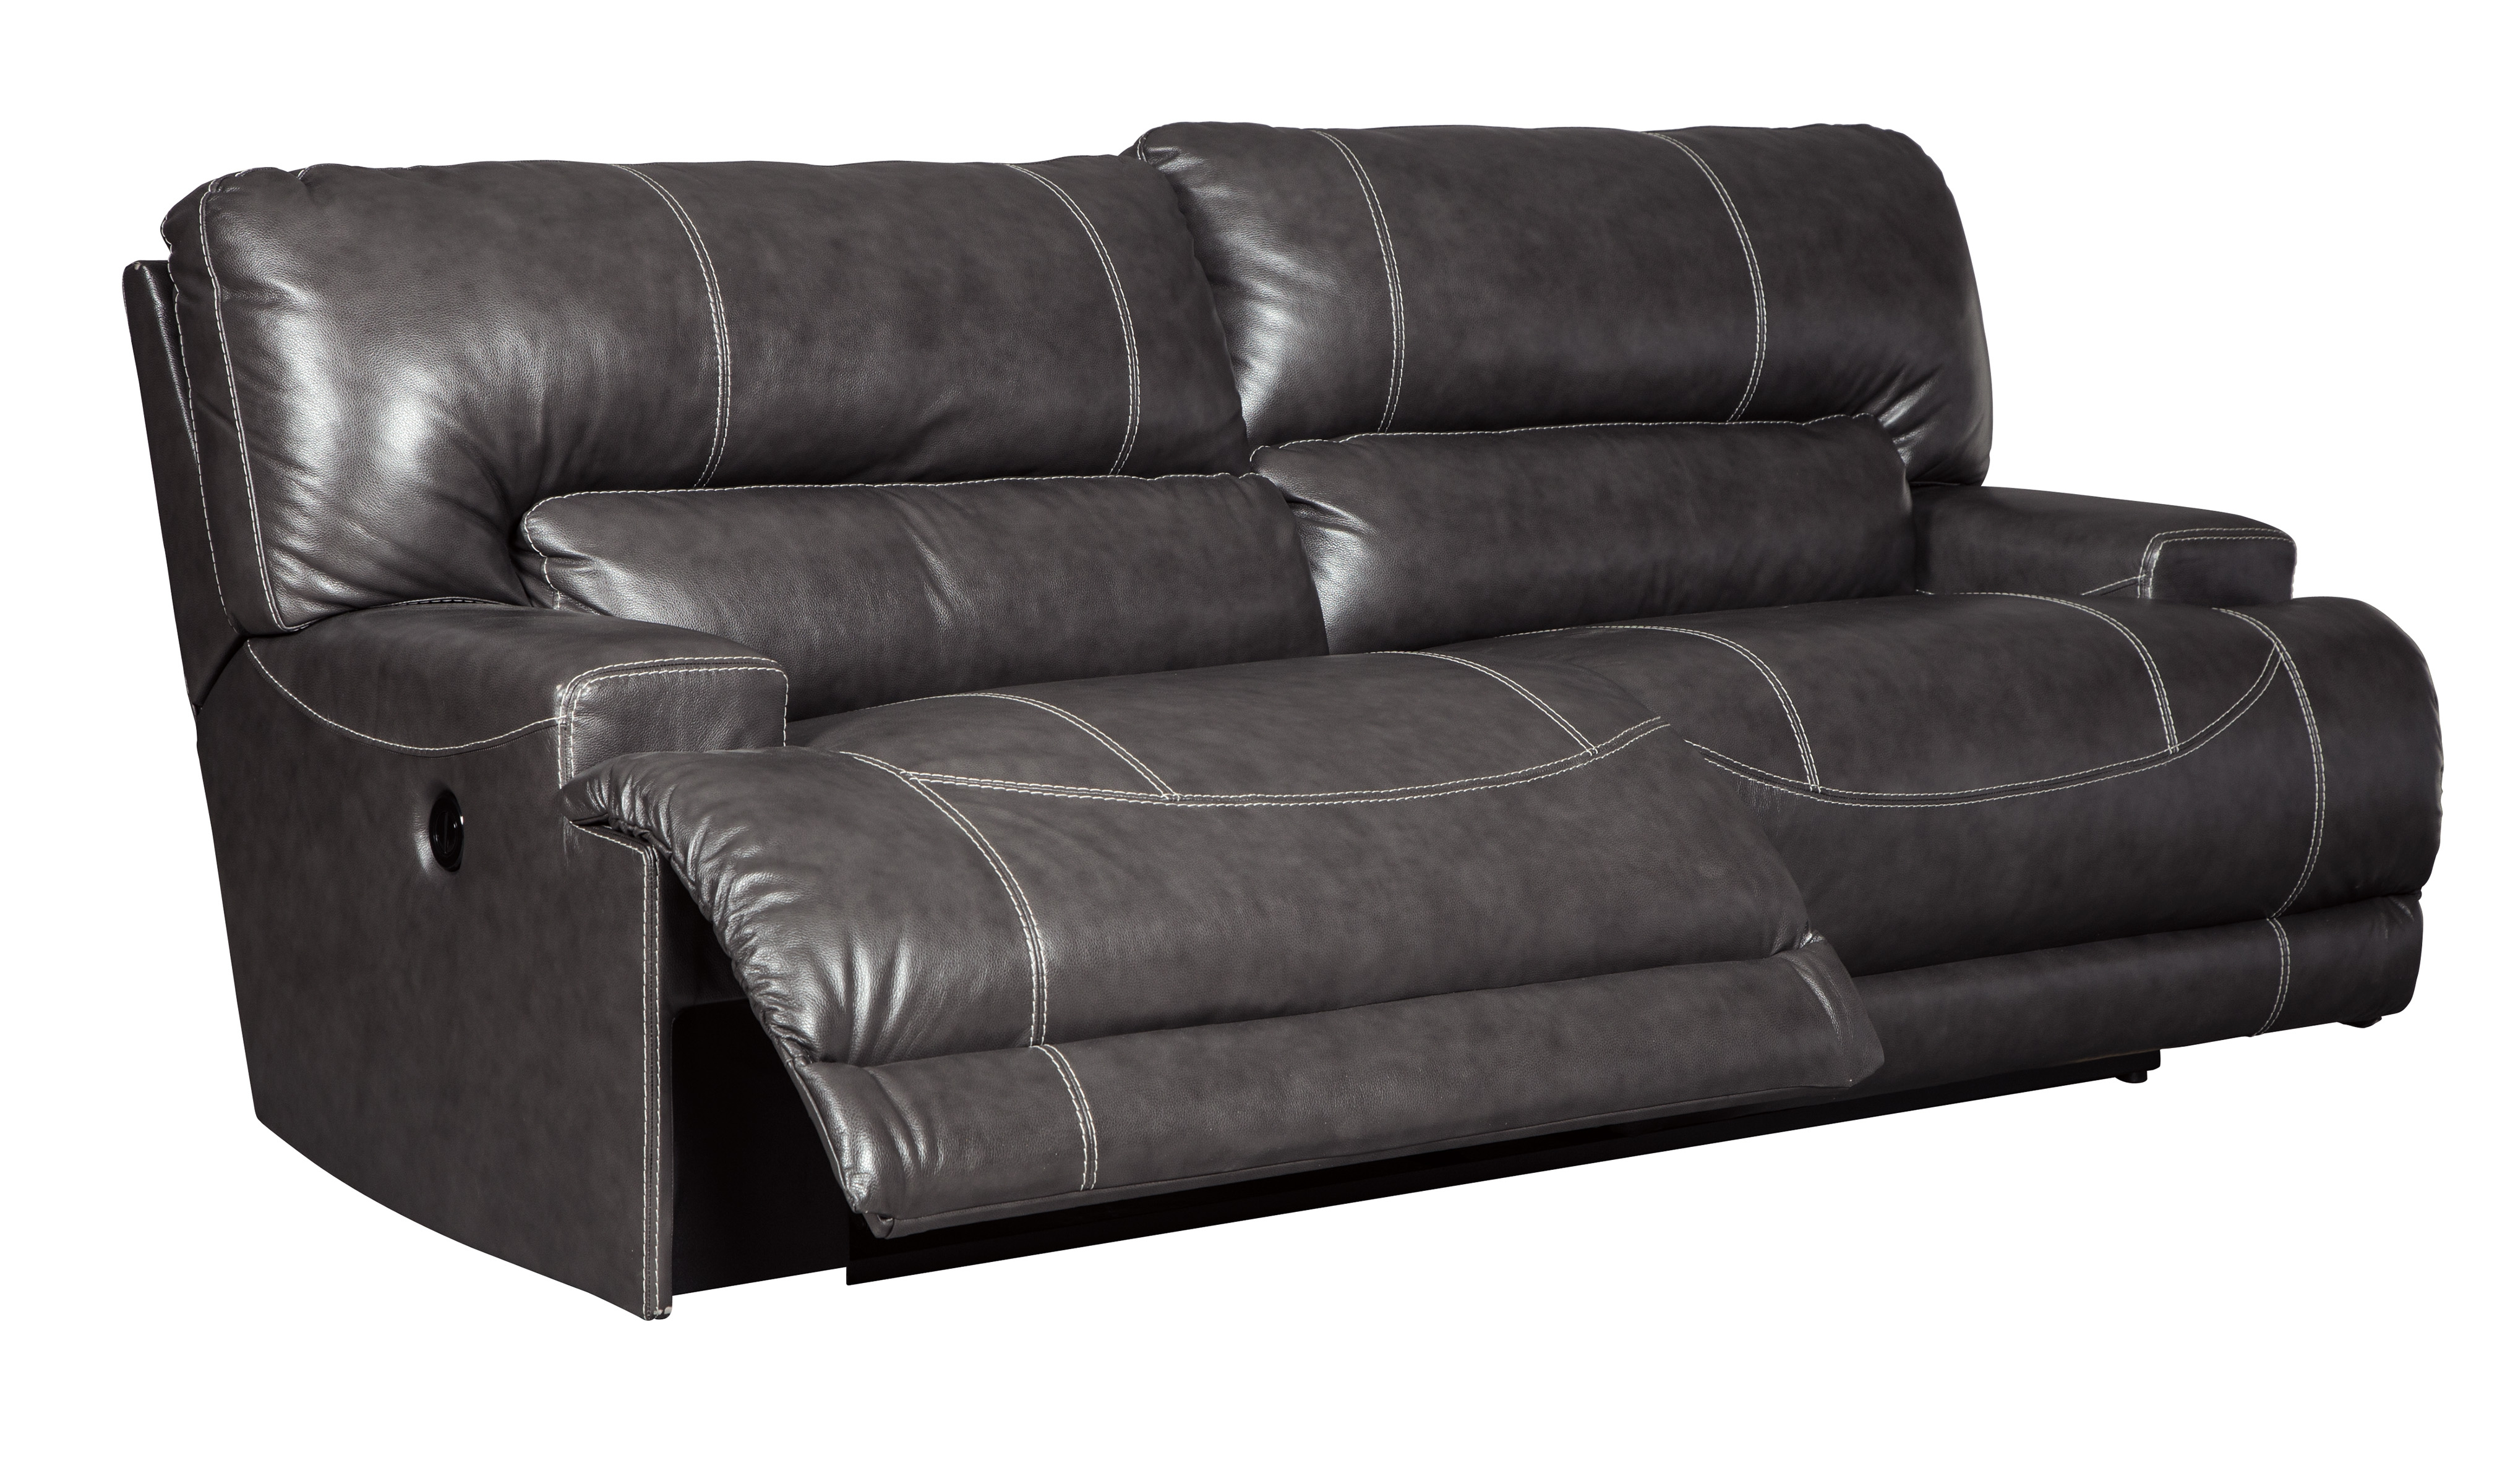 McCaskill Contemporary Gray Leather 2 Seat Reclining Sofa Click To Enlarge ...  sc 1 st  The Classy Home & McCaskill Contemporary Gray Leather 2 Seat Reclining Sofa | Living ... islam-shia.org